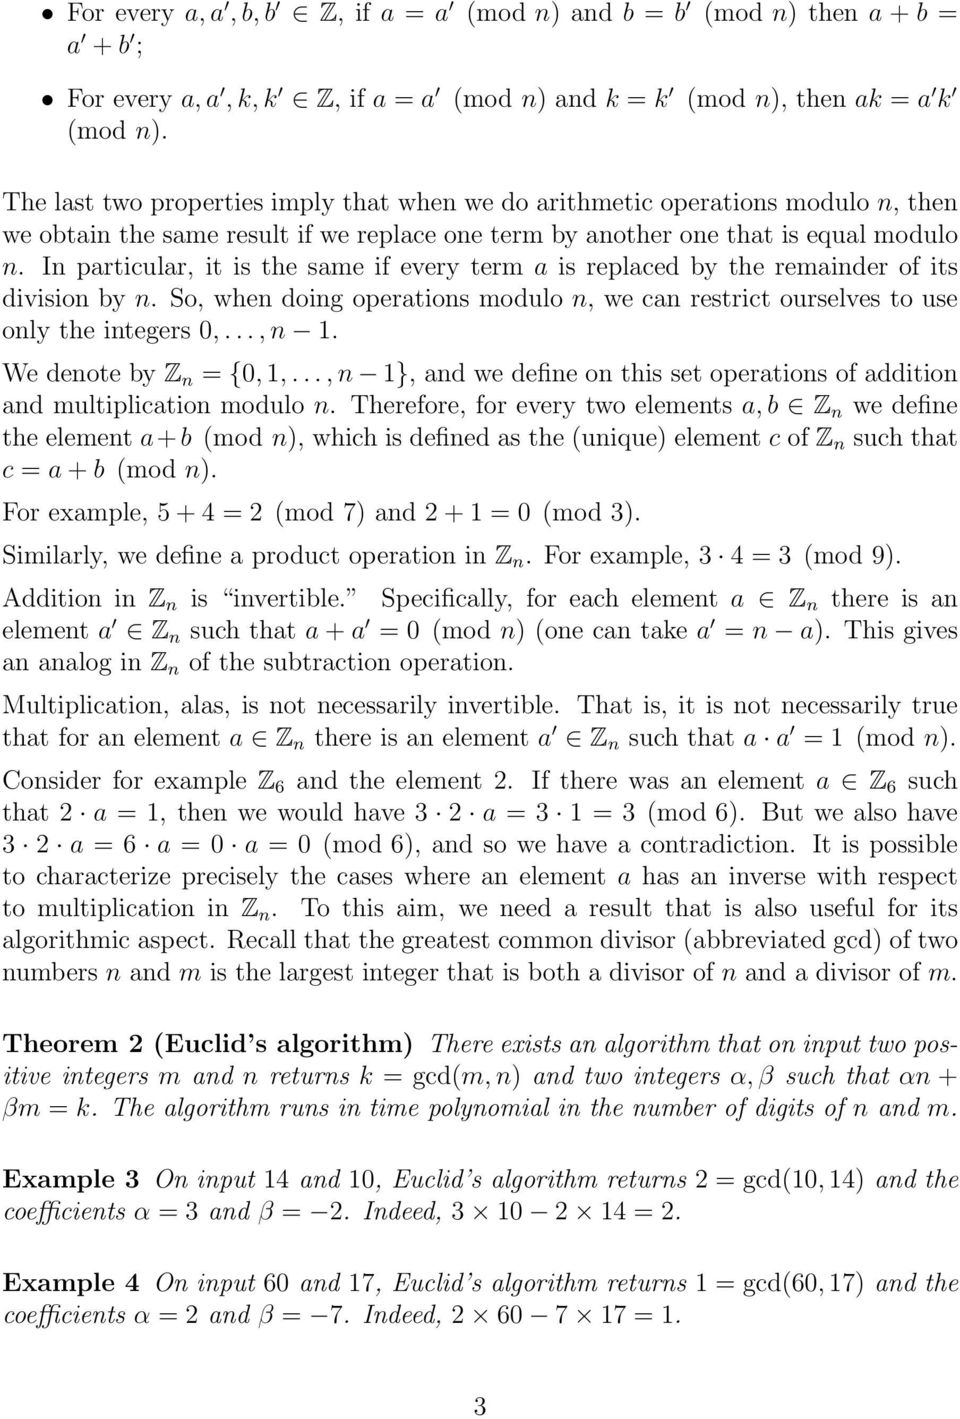 In particular, it is the same if every term a is replaced by the remainder of its division by n. So, when doing operations modulo n, we can restrict ourselves to use only the integers 0,..., n 1.